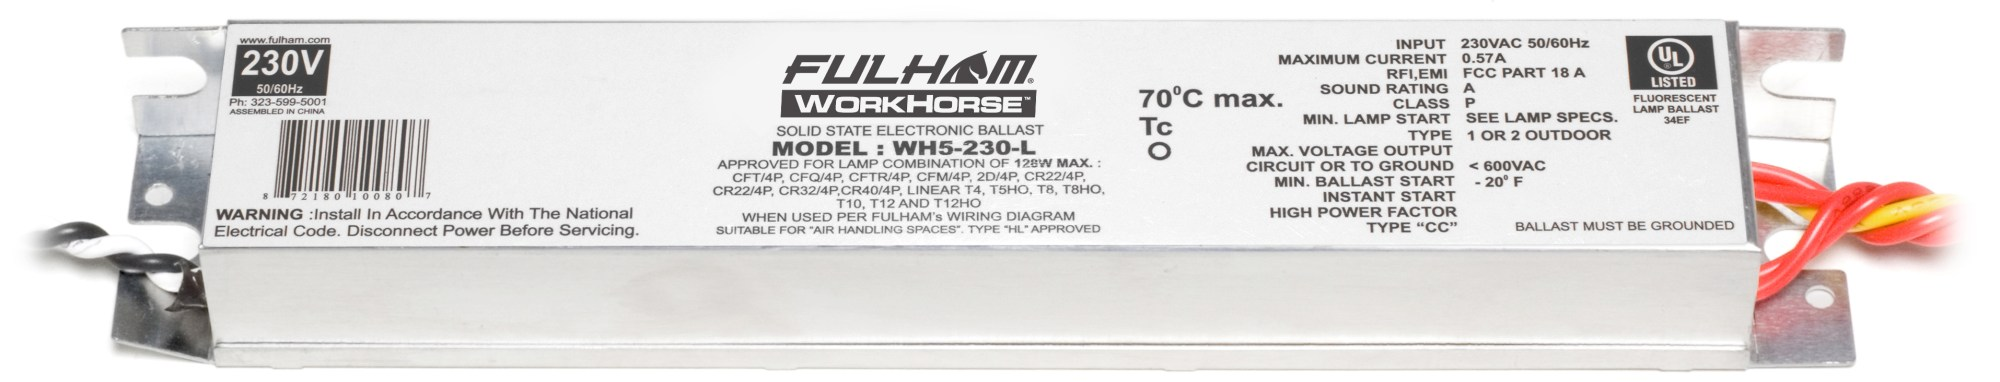 hight resolution of wh5 230 l fulham